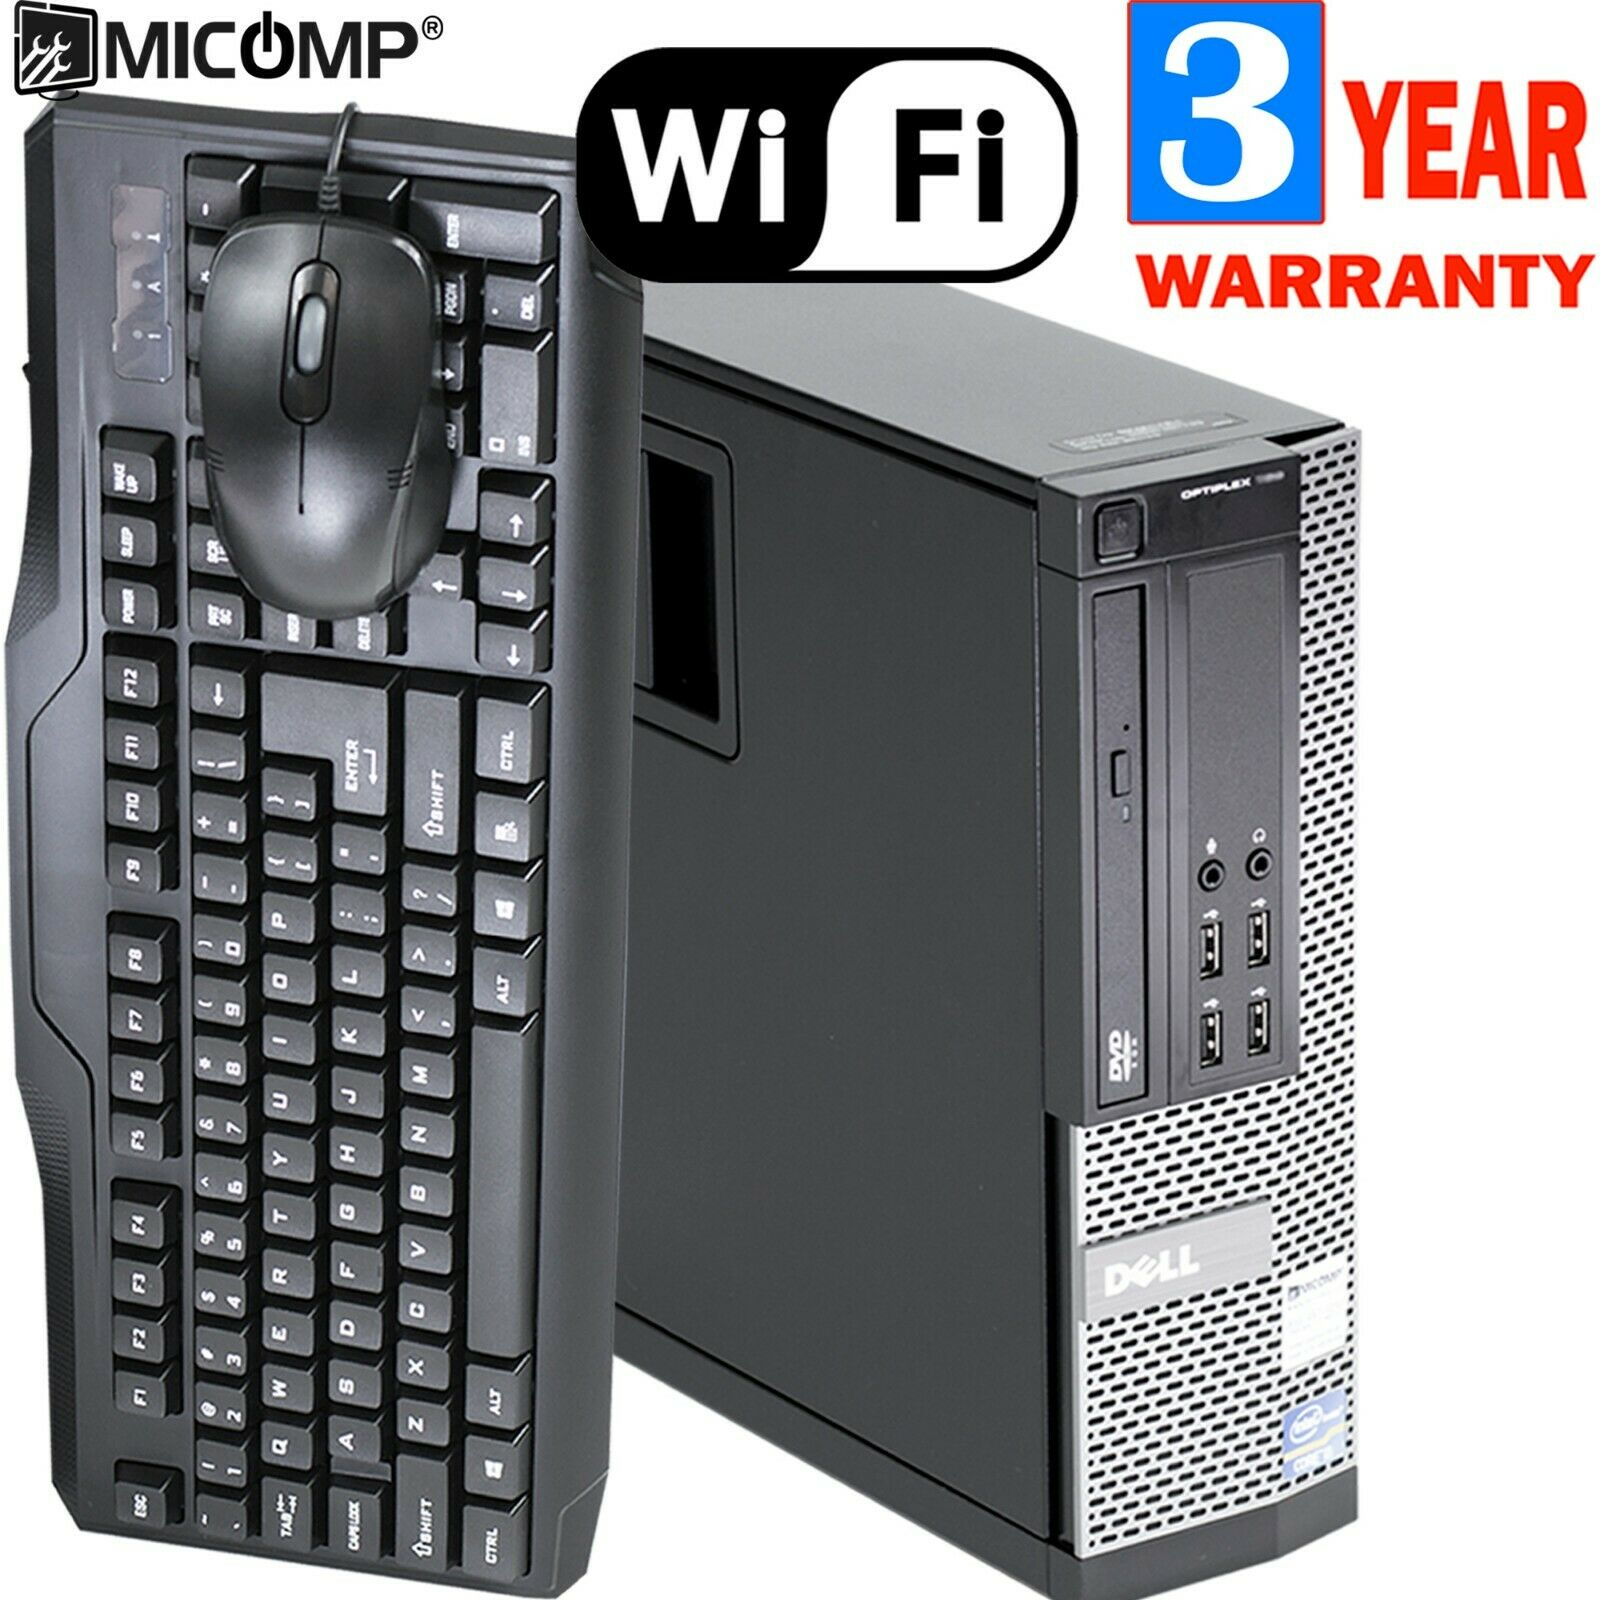 3yr-warranty-dell-desktop-computer-pc-i5-3-1ghz-8gb-new-500gb-ssd-win-10-wifi